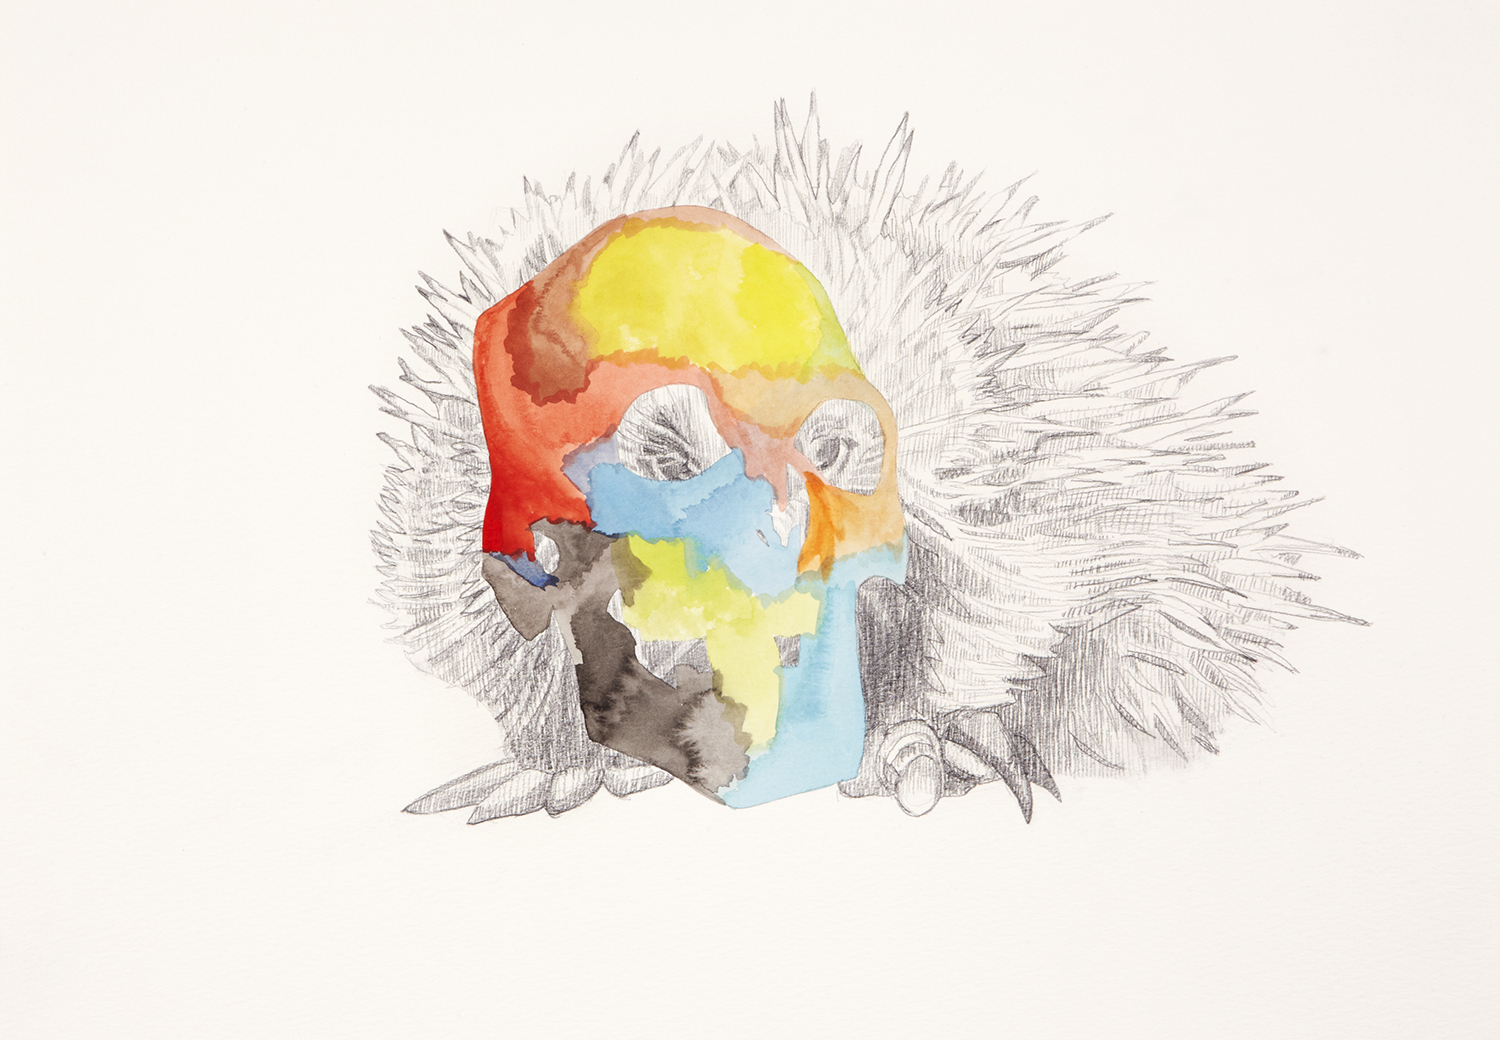 Skull Centric Behaviour #7, 2011, Watercolour and pencil on paper, 42.0 x 29.7 cm, Photo: Sam Scoufos